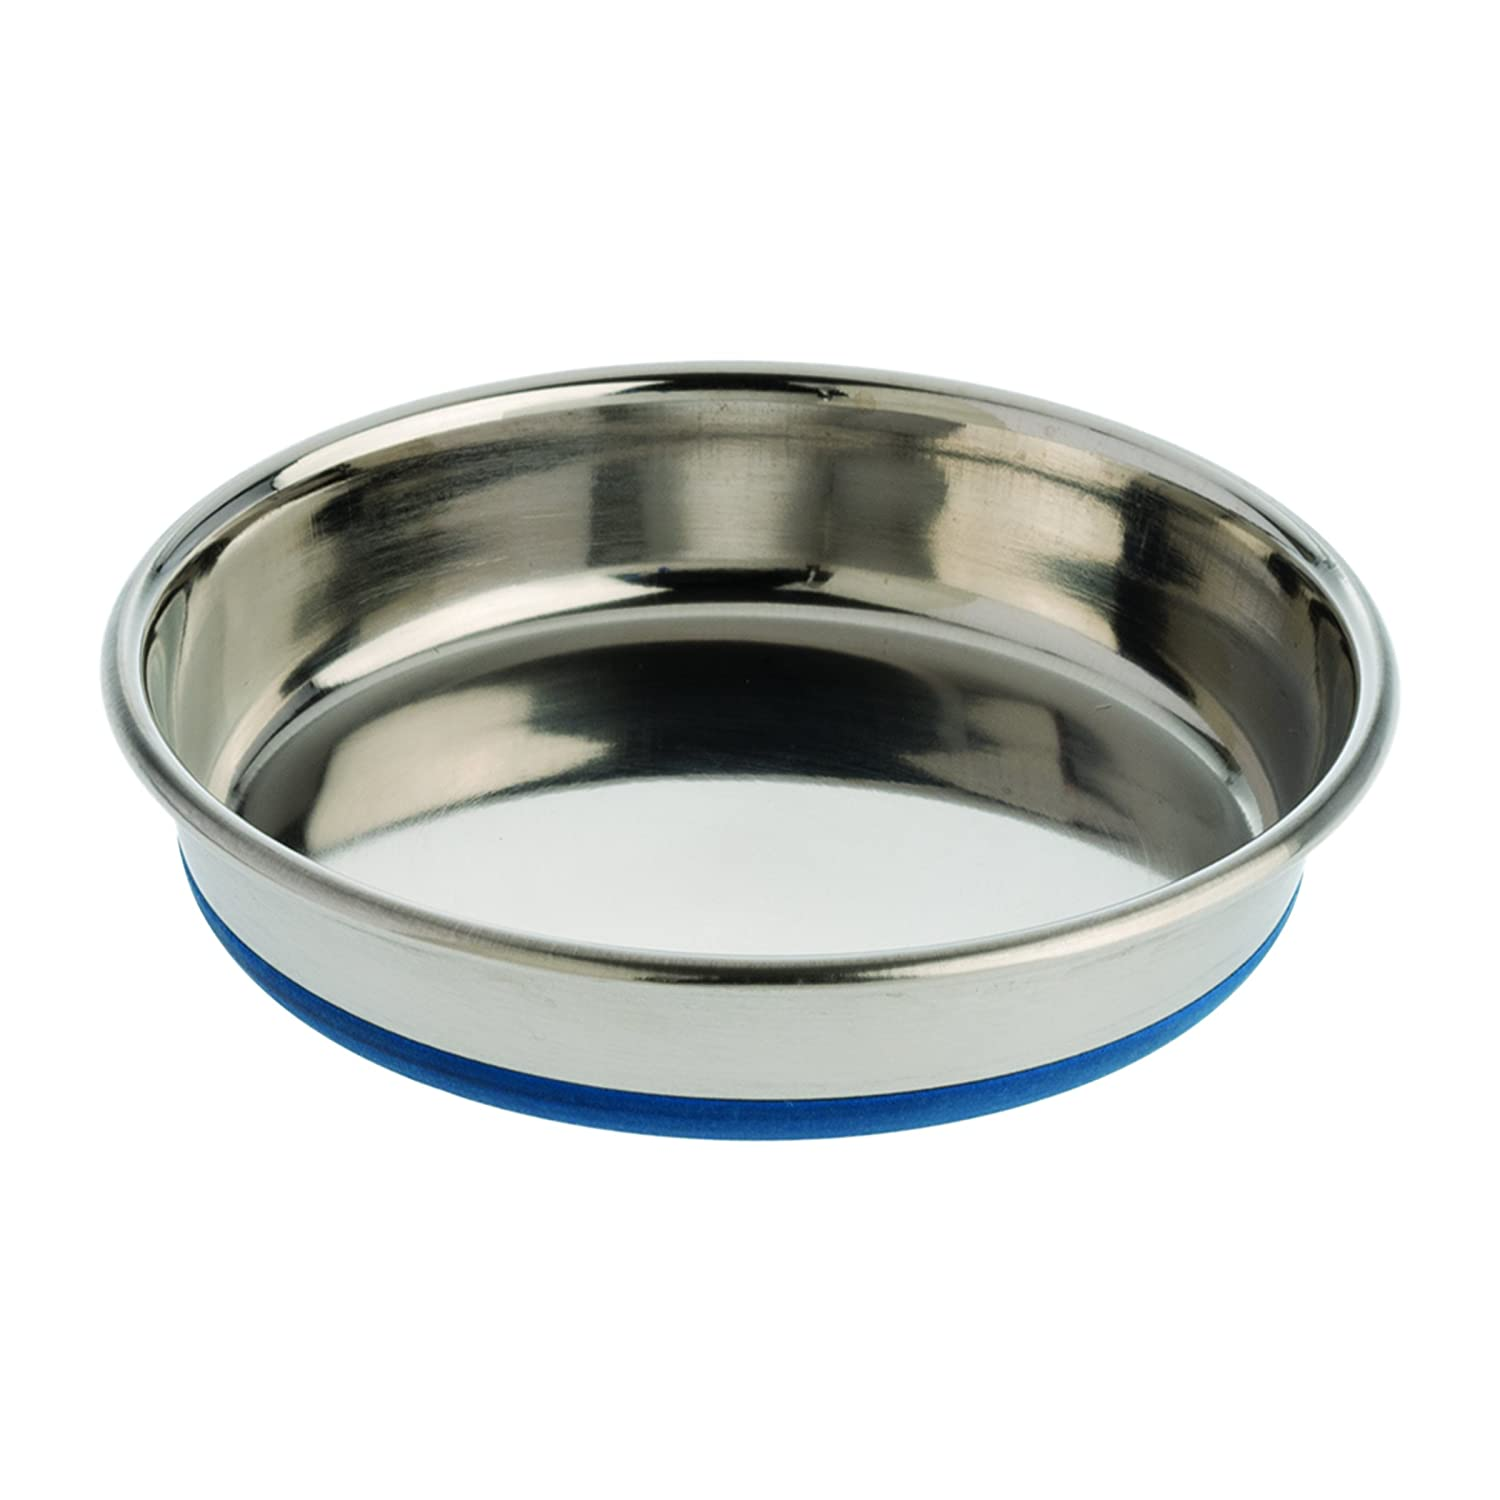 OURPQ Durapet Premium Rubber-Bonded Stainless Steel Dish